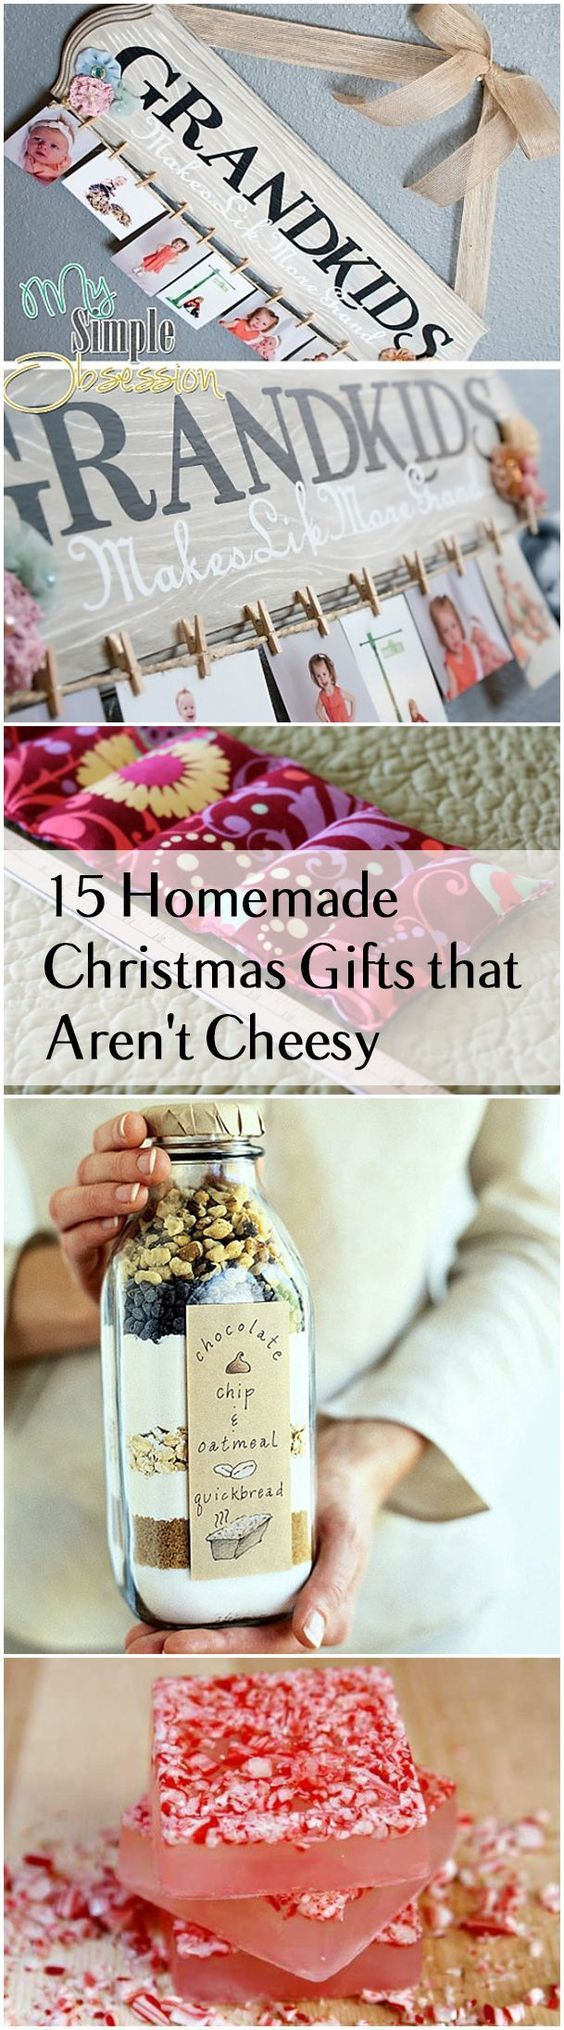 1118 best gift ideas images on pinterest hand made gifts handmade 15 homemade christmas gifts that arent cheesy ideas for christmas presentsdiy solutioingenieria Choice Image